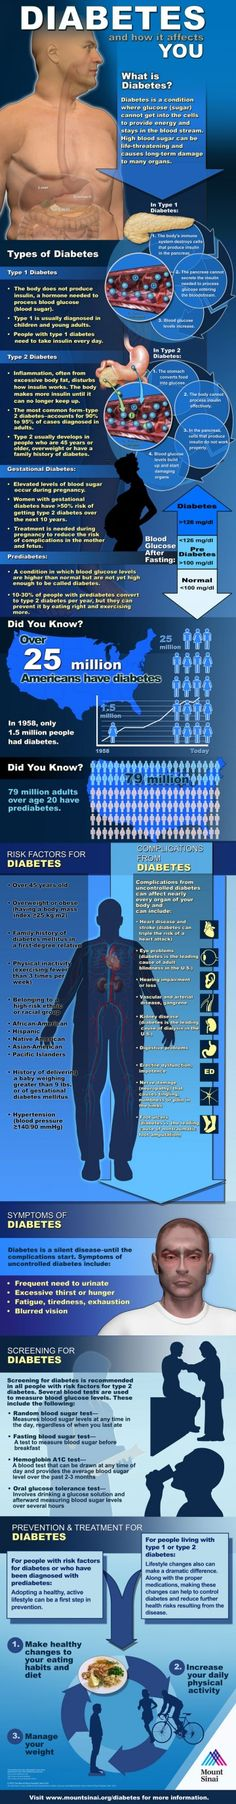 The Effect of Diabetes - http://www.ahealthblog.com/a-higher-daily-step-count-beneficial-in-warding-off-diabetes.html?utm_content=buffer0a210&utm_medium=social&utm_source=pinterest.com&utm_campaign=buffer  #health #diabetes #sugar #insulin #weight #exercise #heart #diet #fatigue